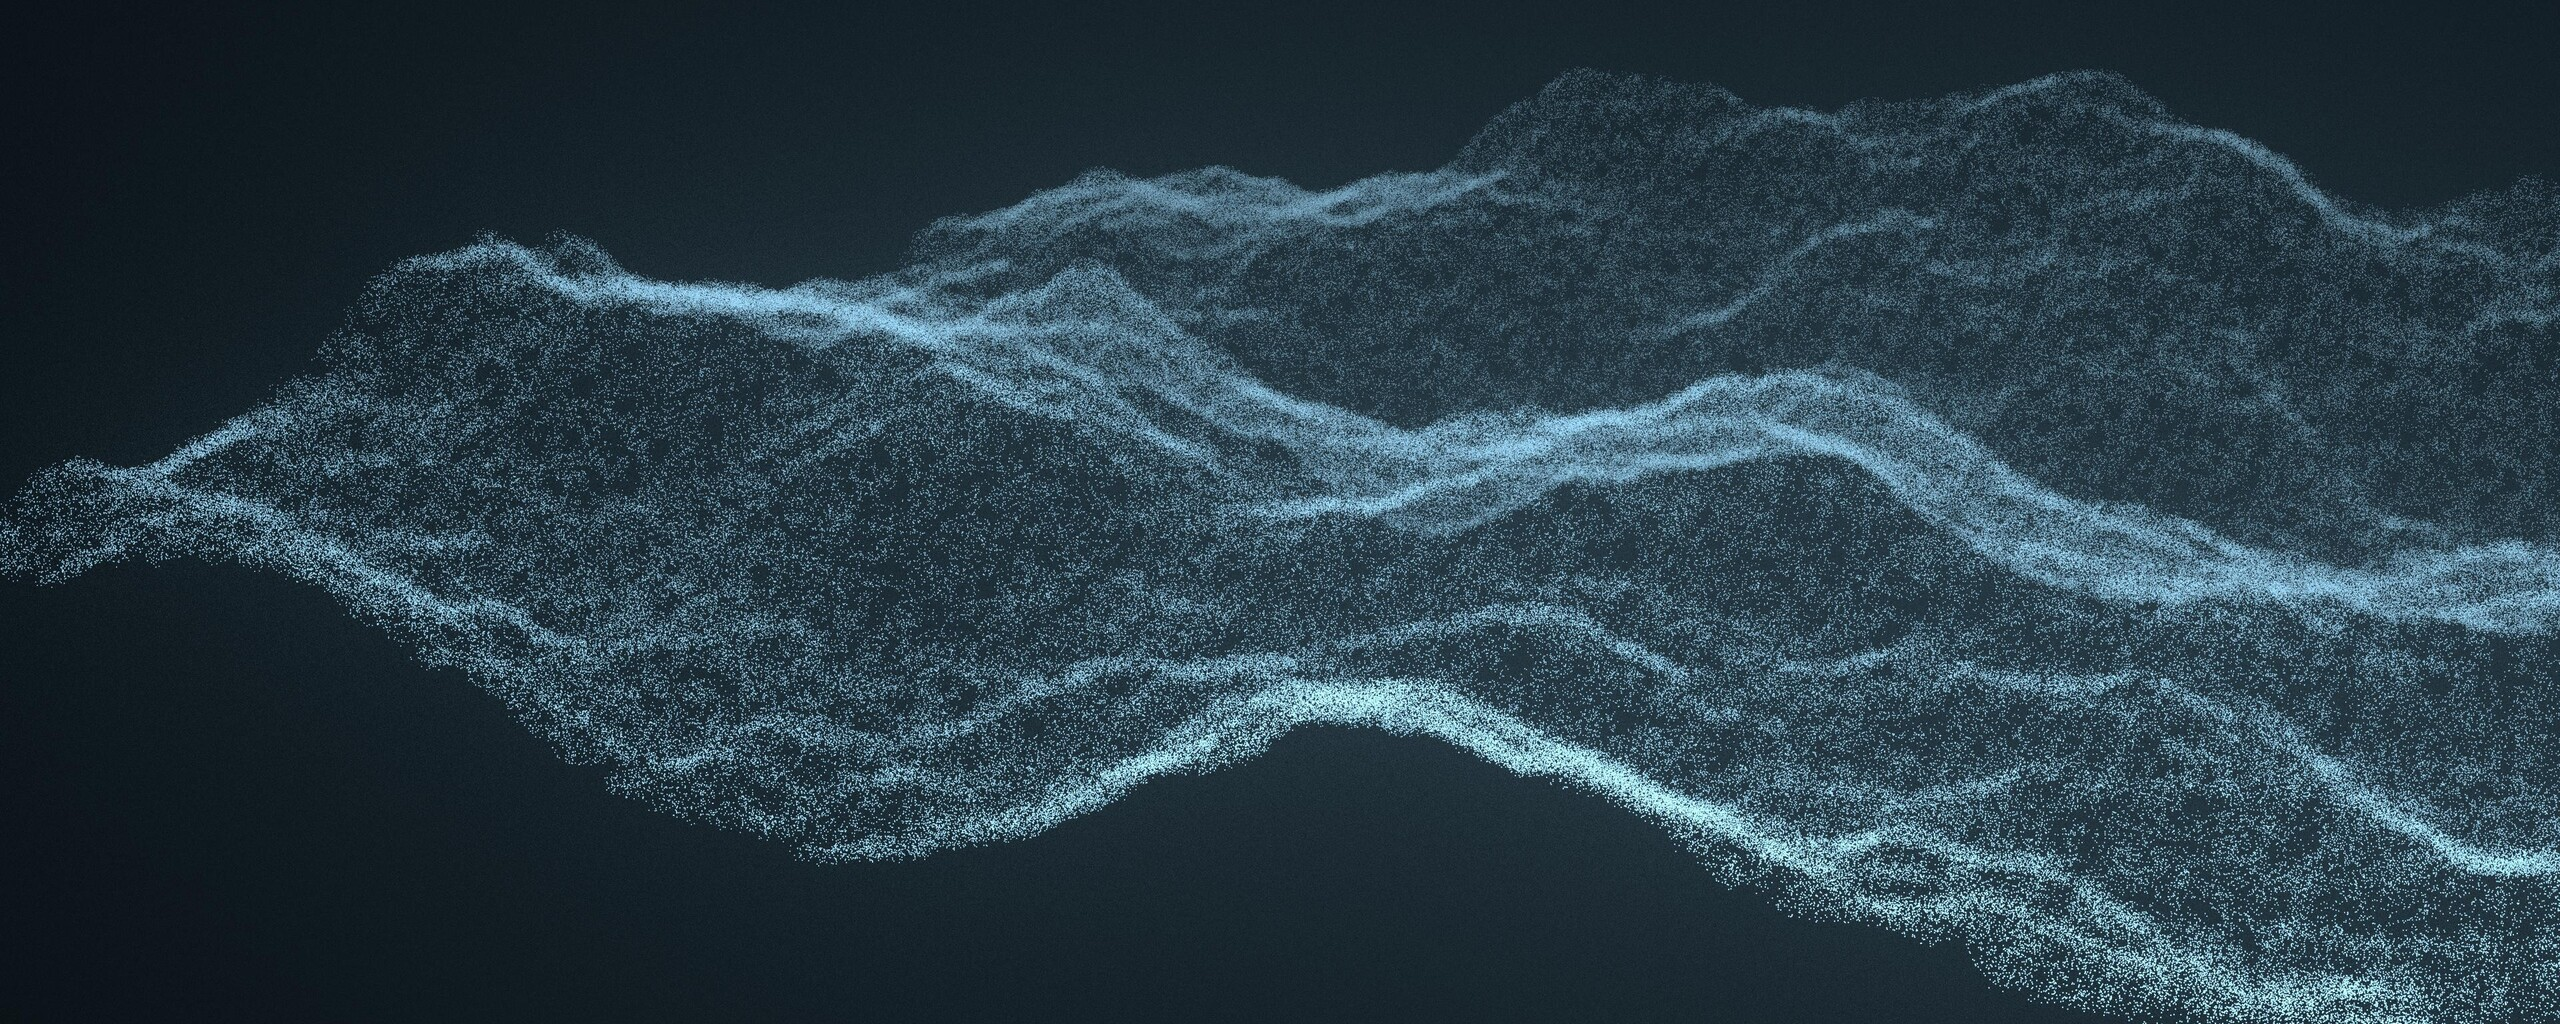 abstract-dust-particles-hd.jpg